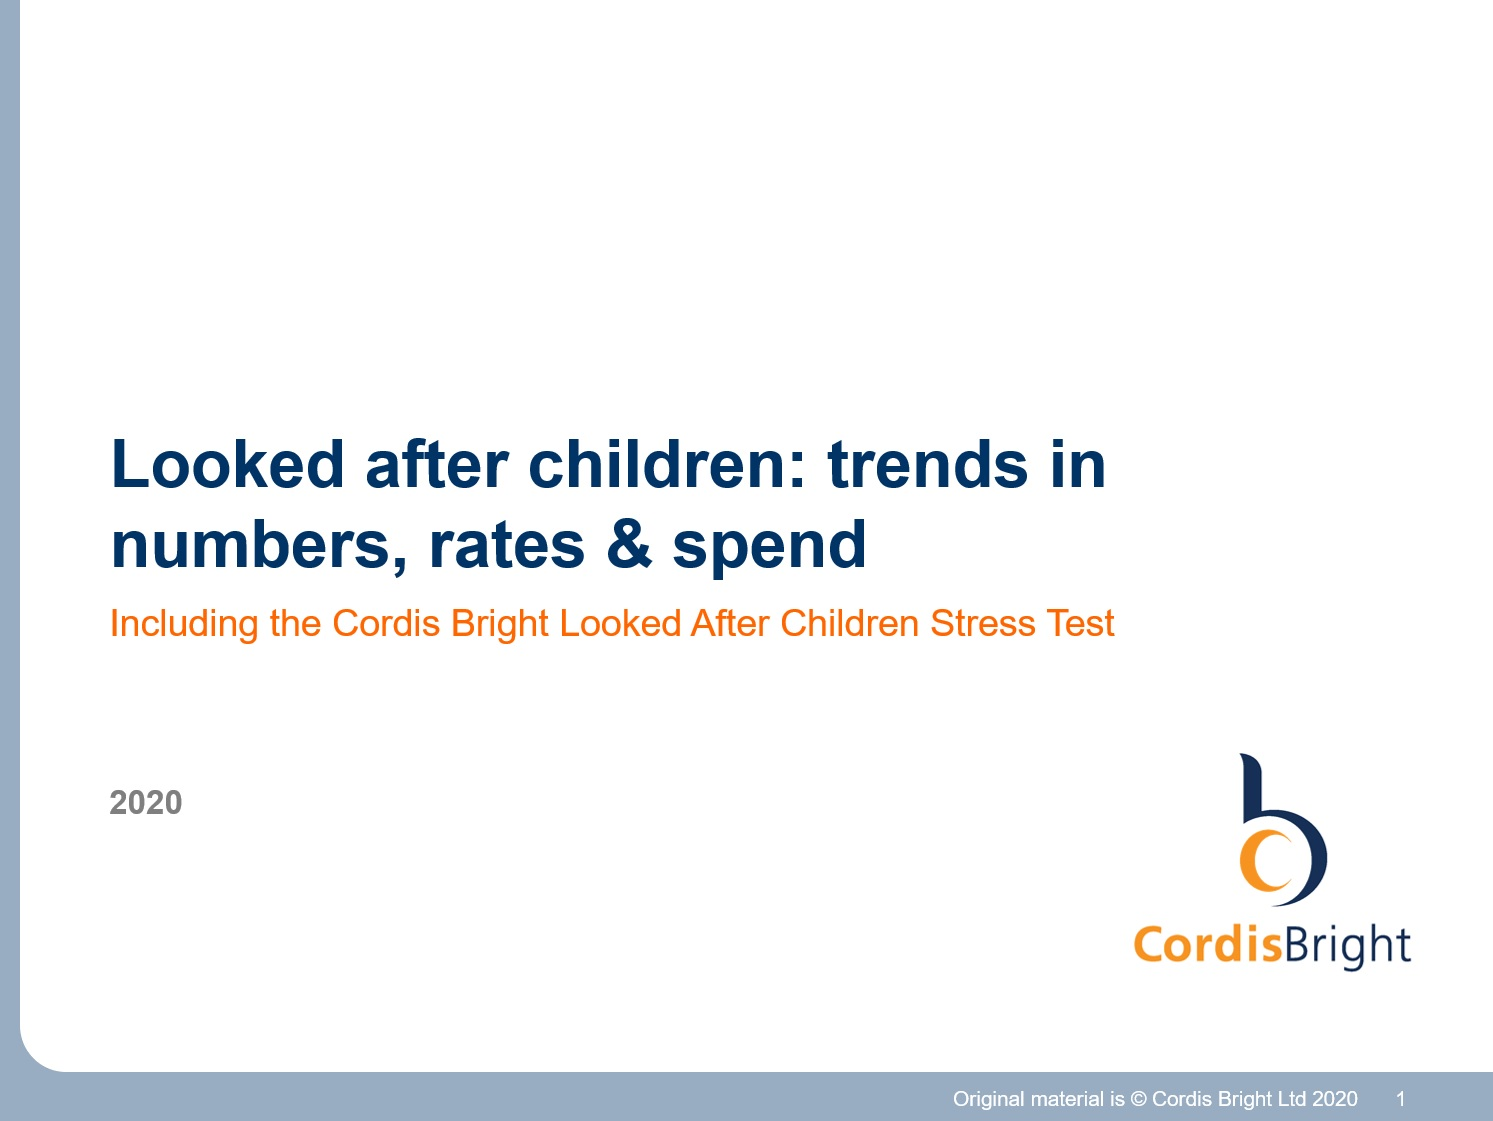 Looked after children stress test 2020